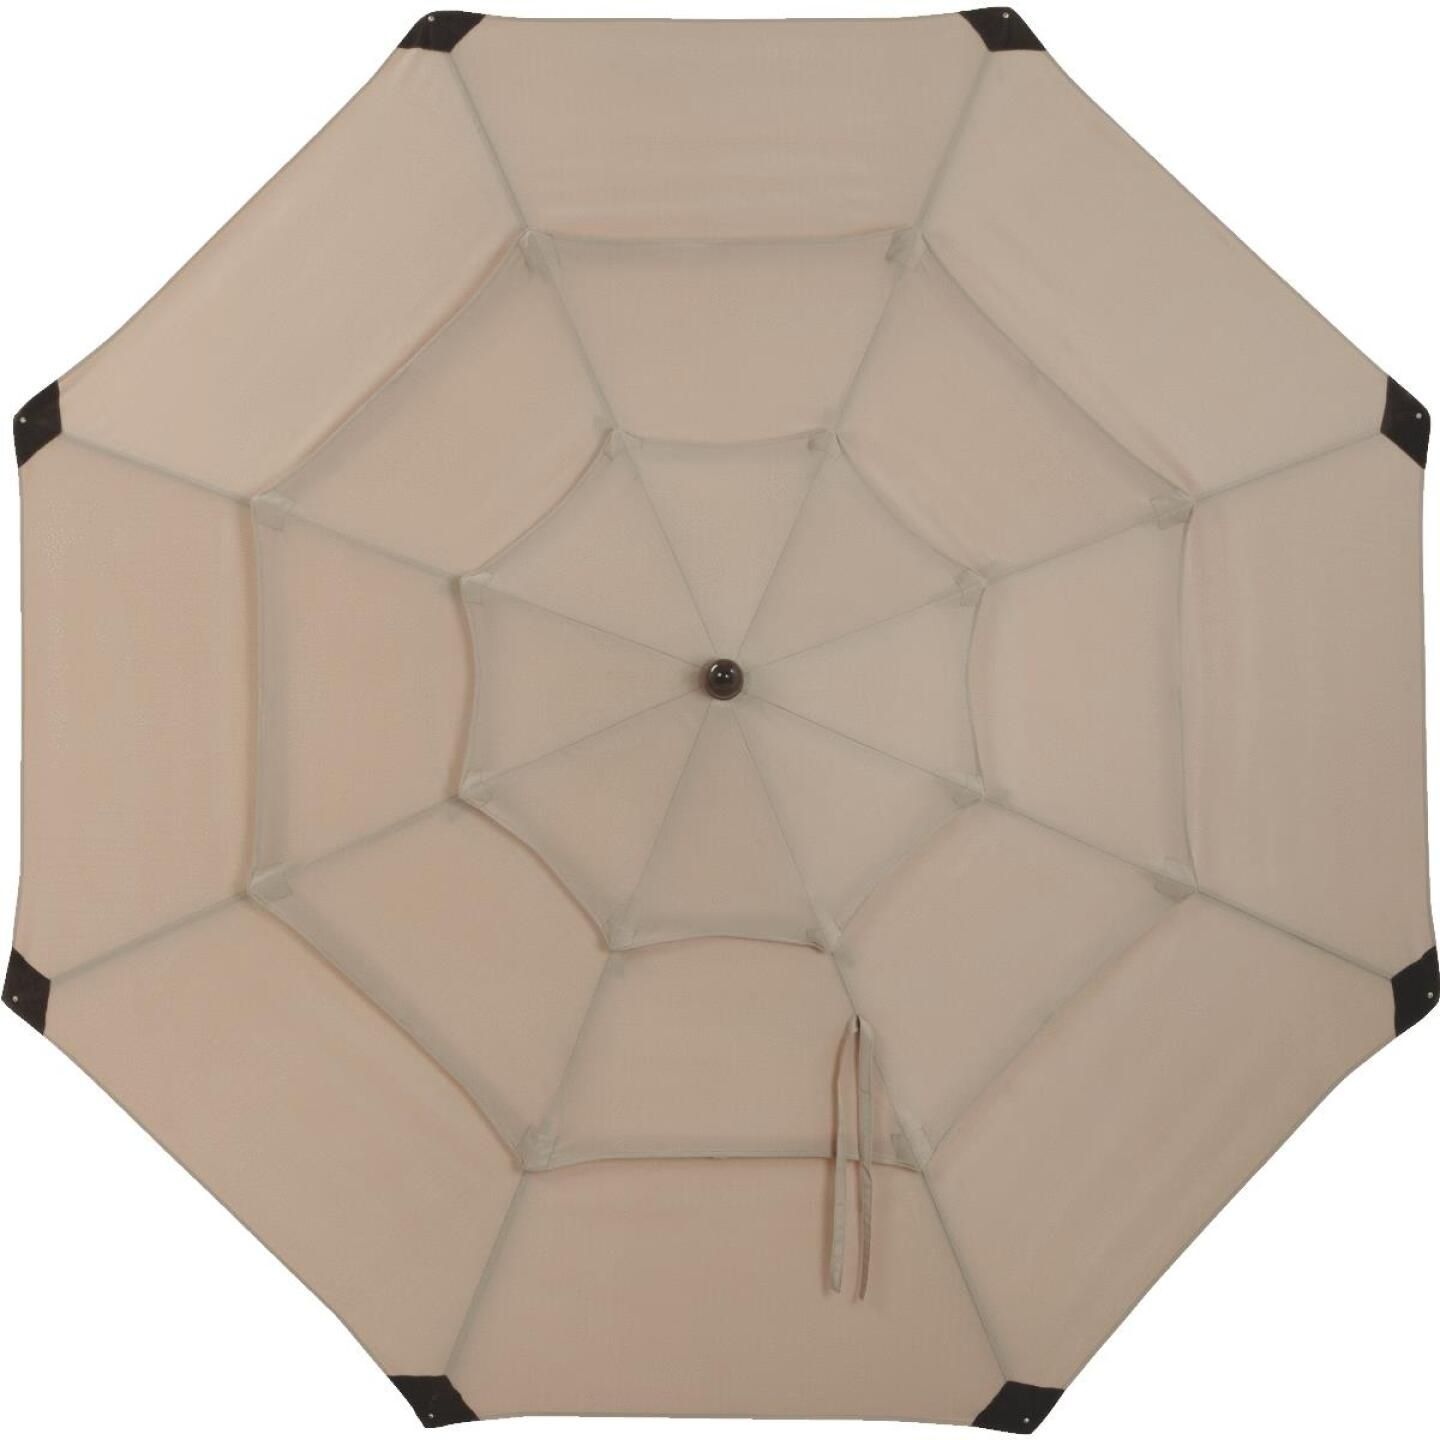 Outdoor Expressions 9 Ft. 3-Tier Tilt/Pulley Tan Patio Umbrella Image 5